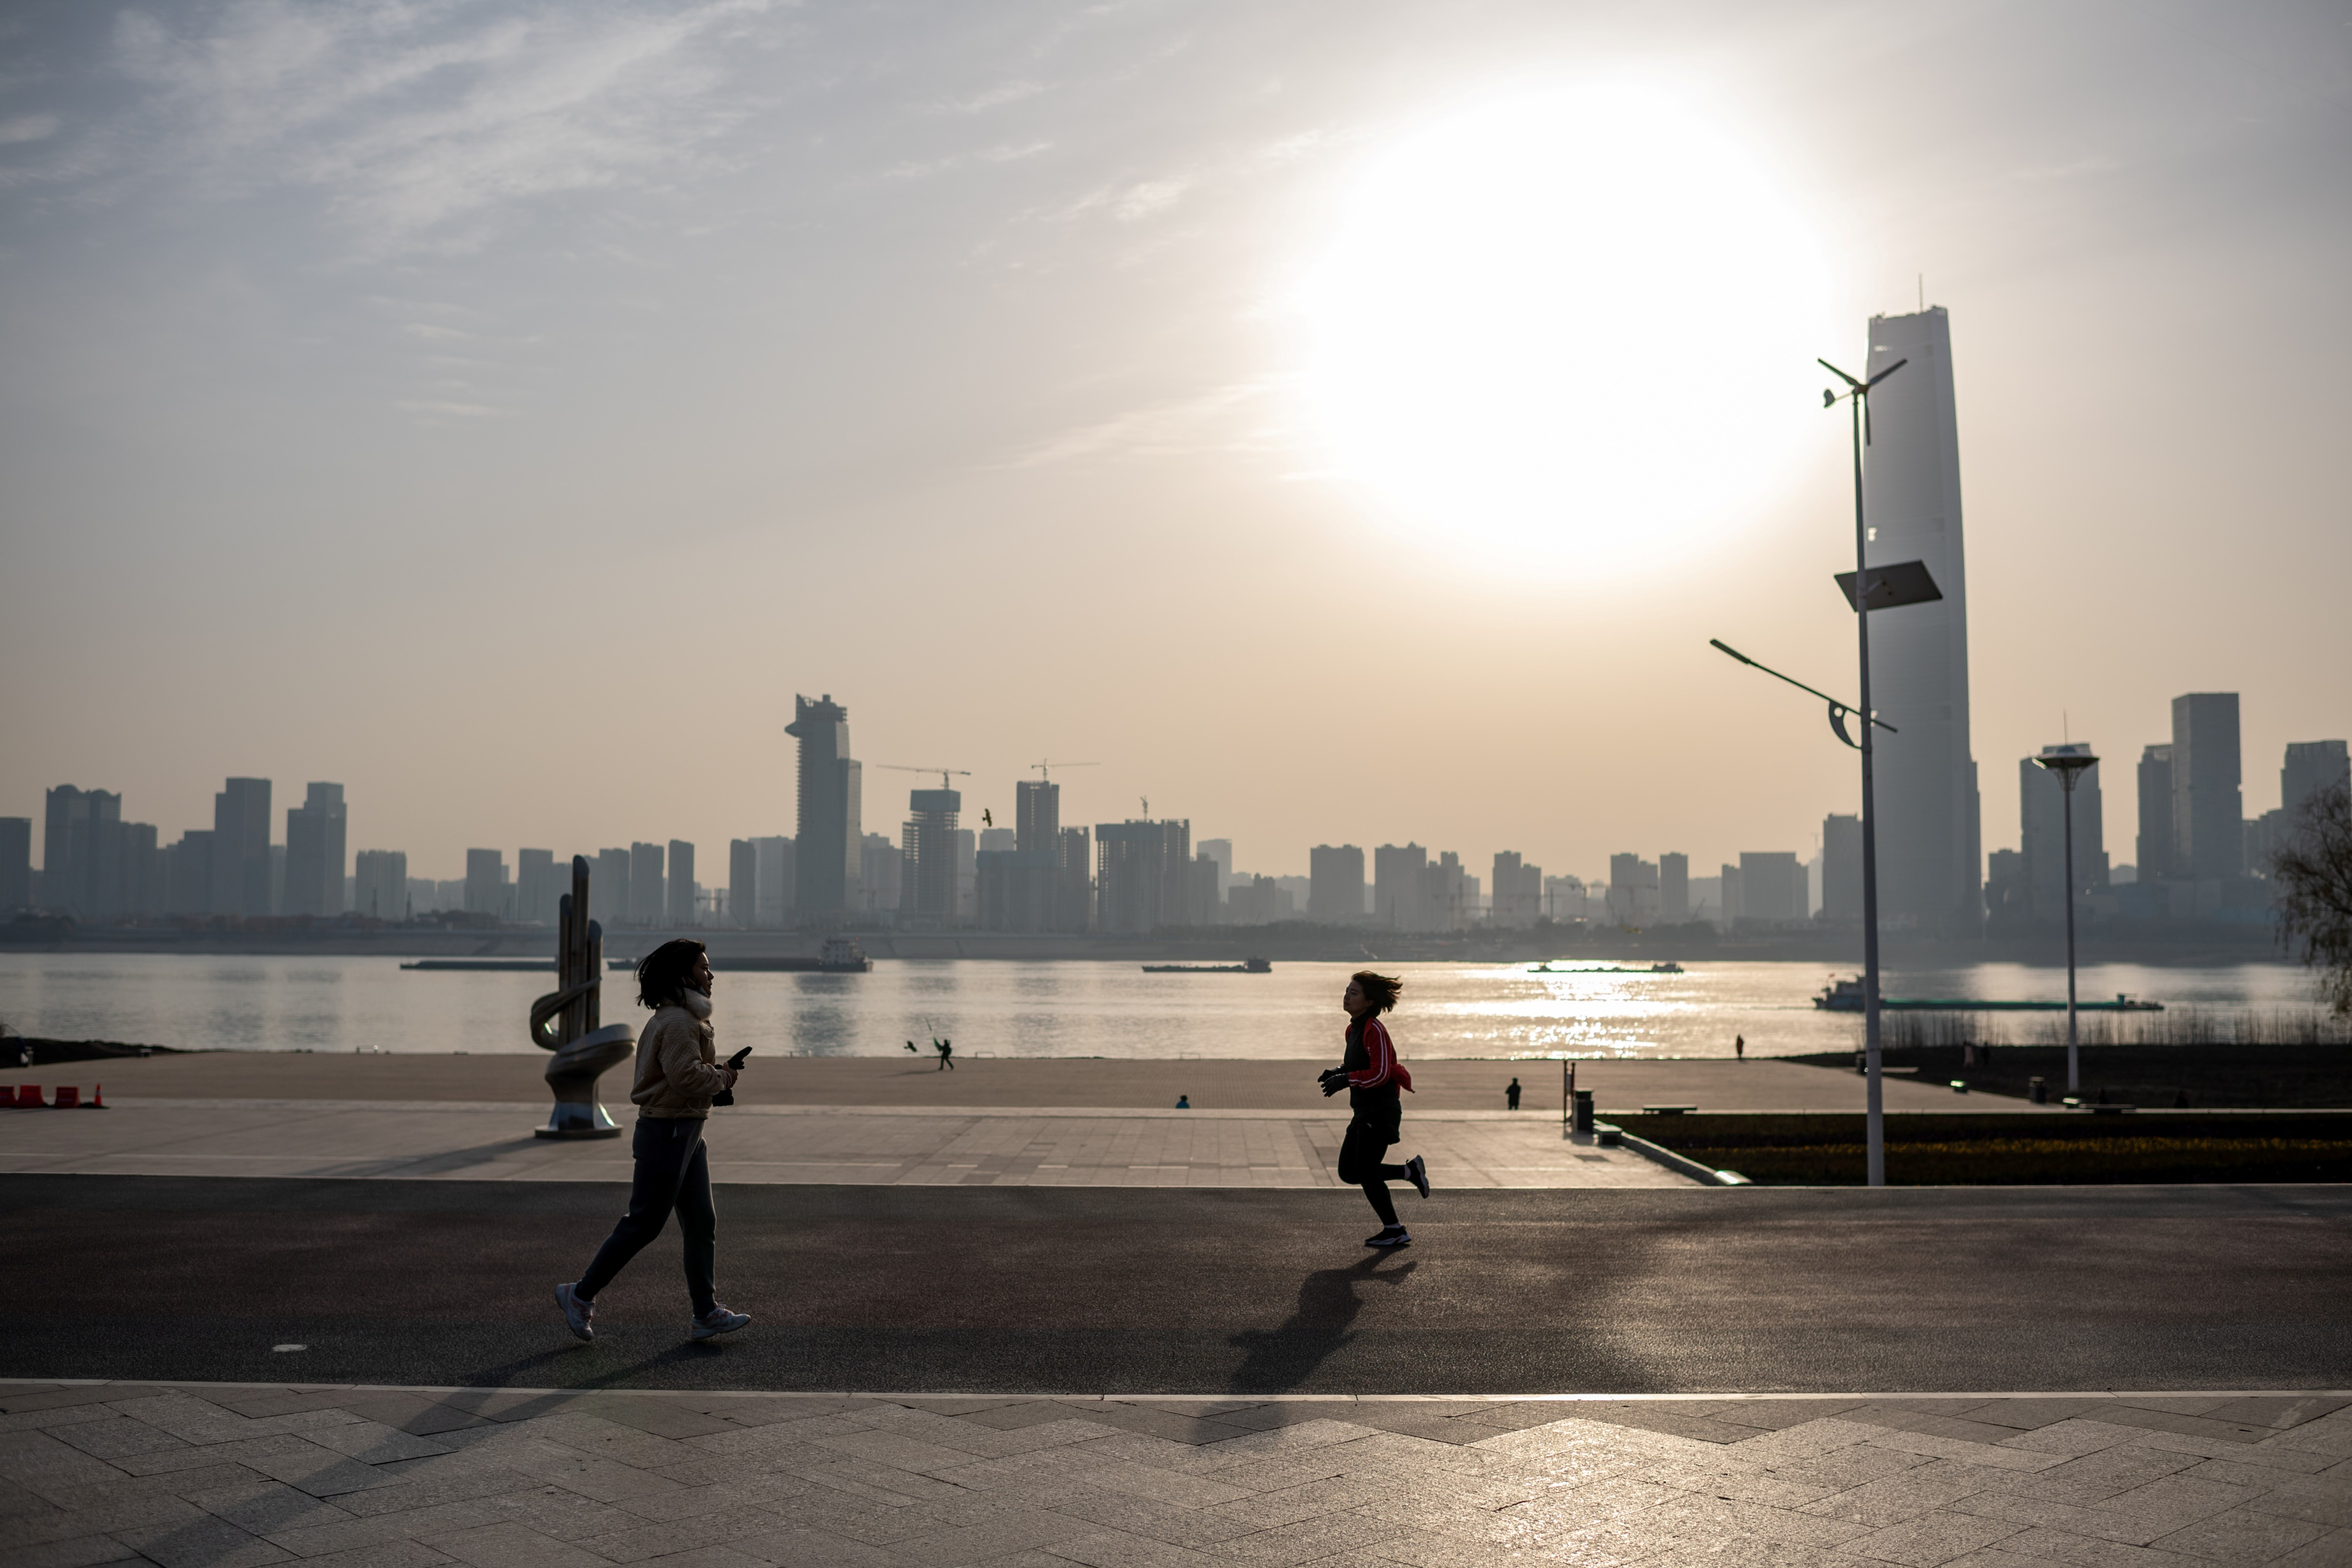 People run along the banks of the Yangtze River in Wuhan on 11 January, as the city marks the first anniversary of China confirming its first COVID-19 death.